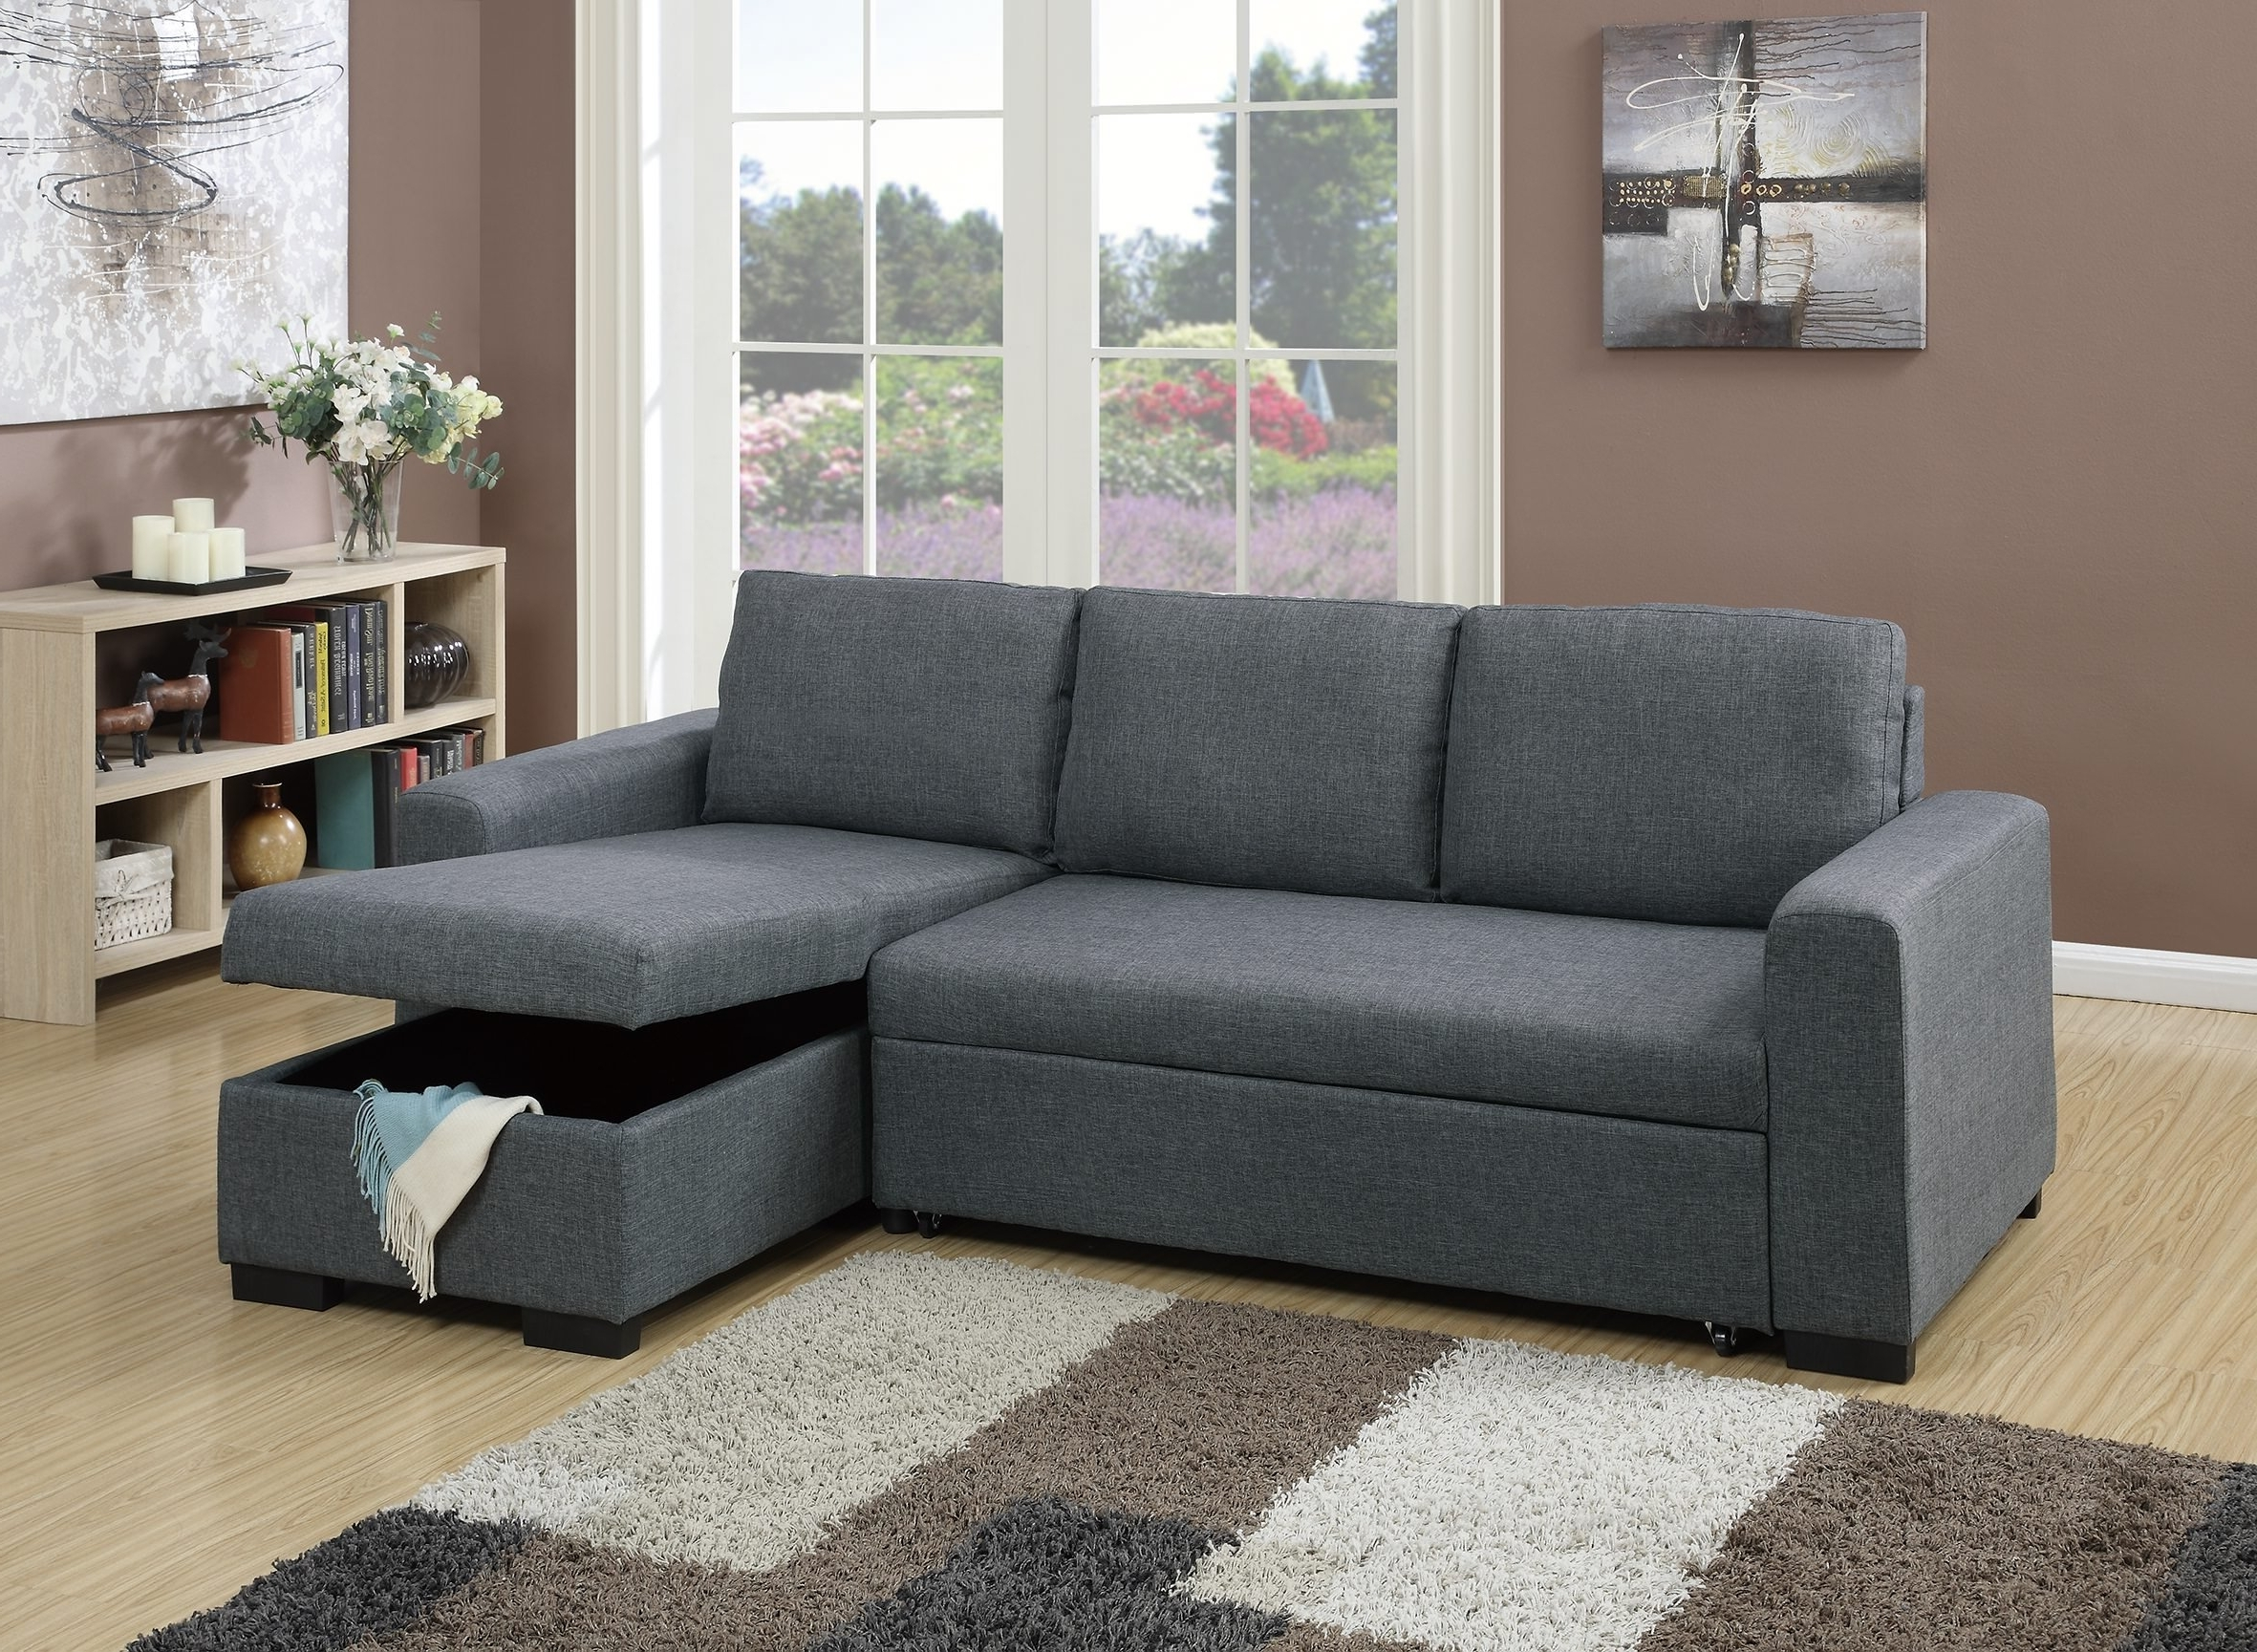 Favorite F6931 Blue Gray Convertible Sectional Sofapoundex In Convertible Sectional Sofas (View 7 of 20)